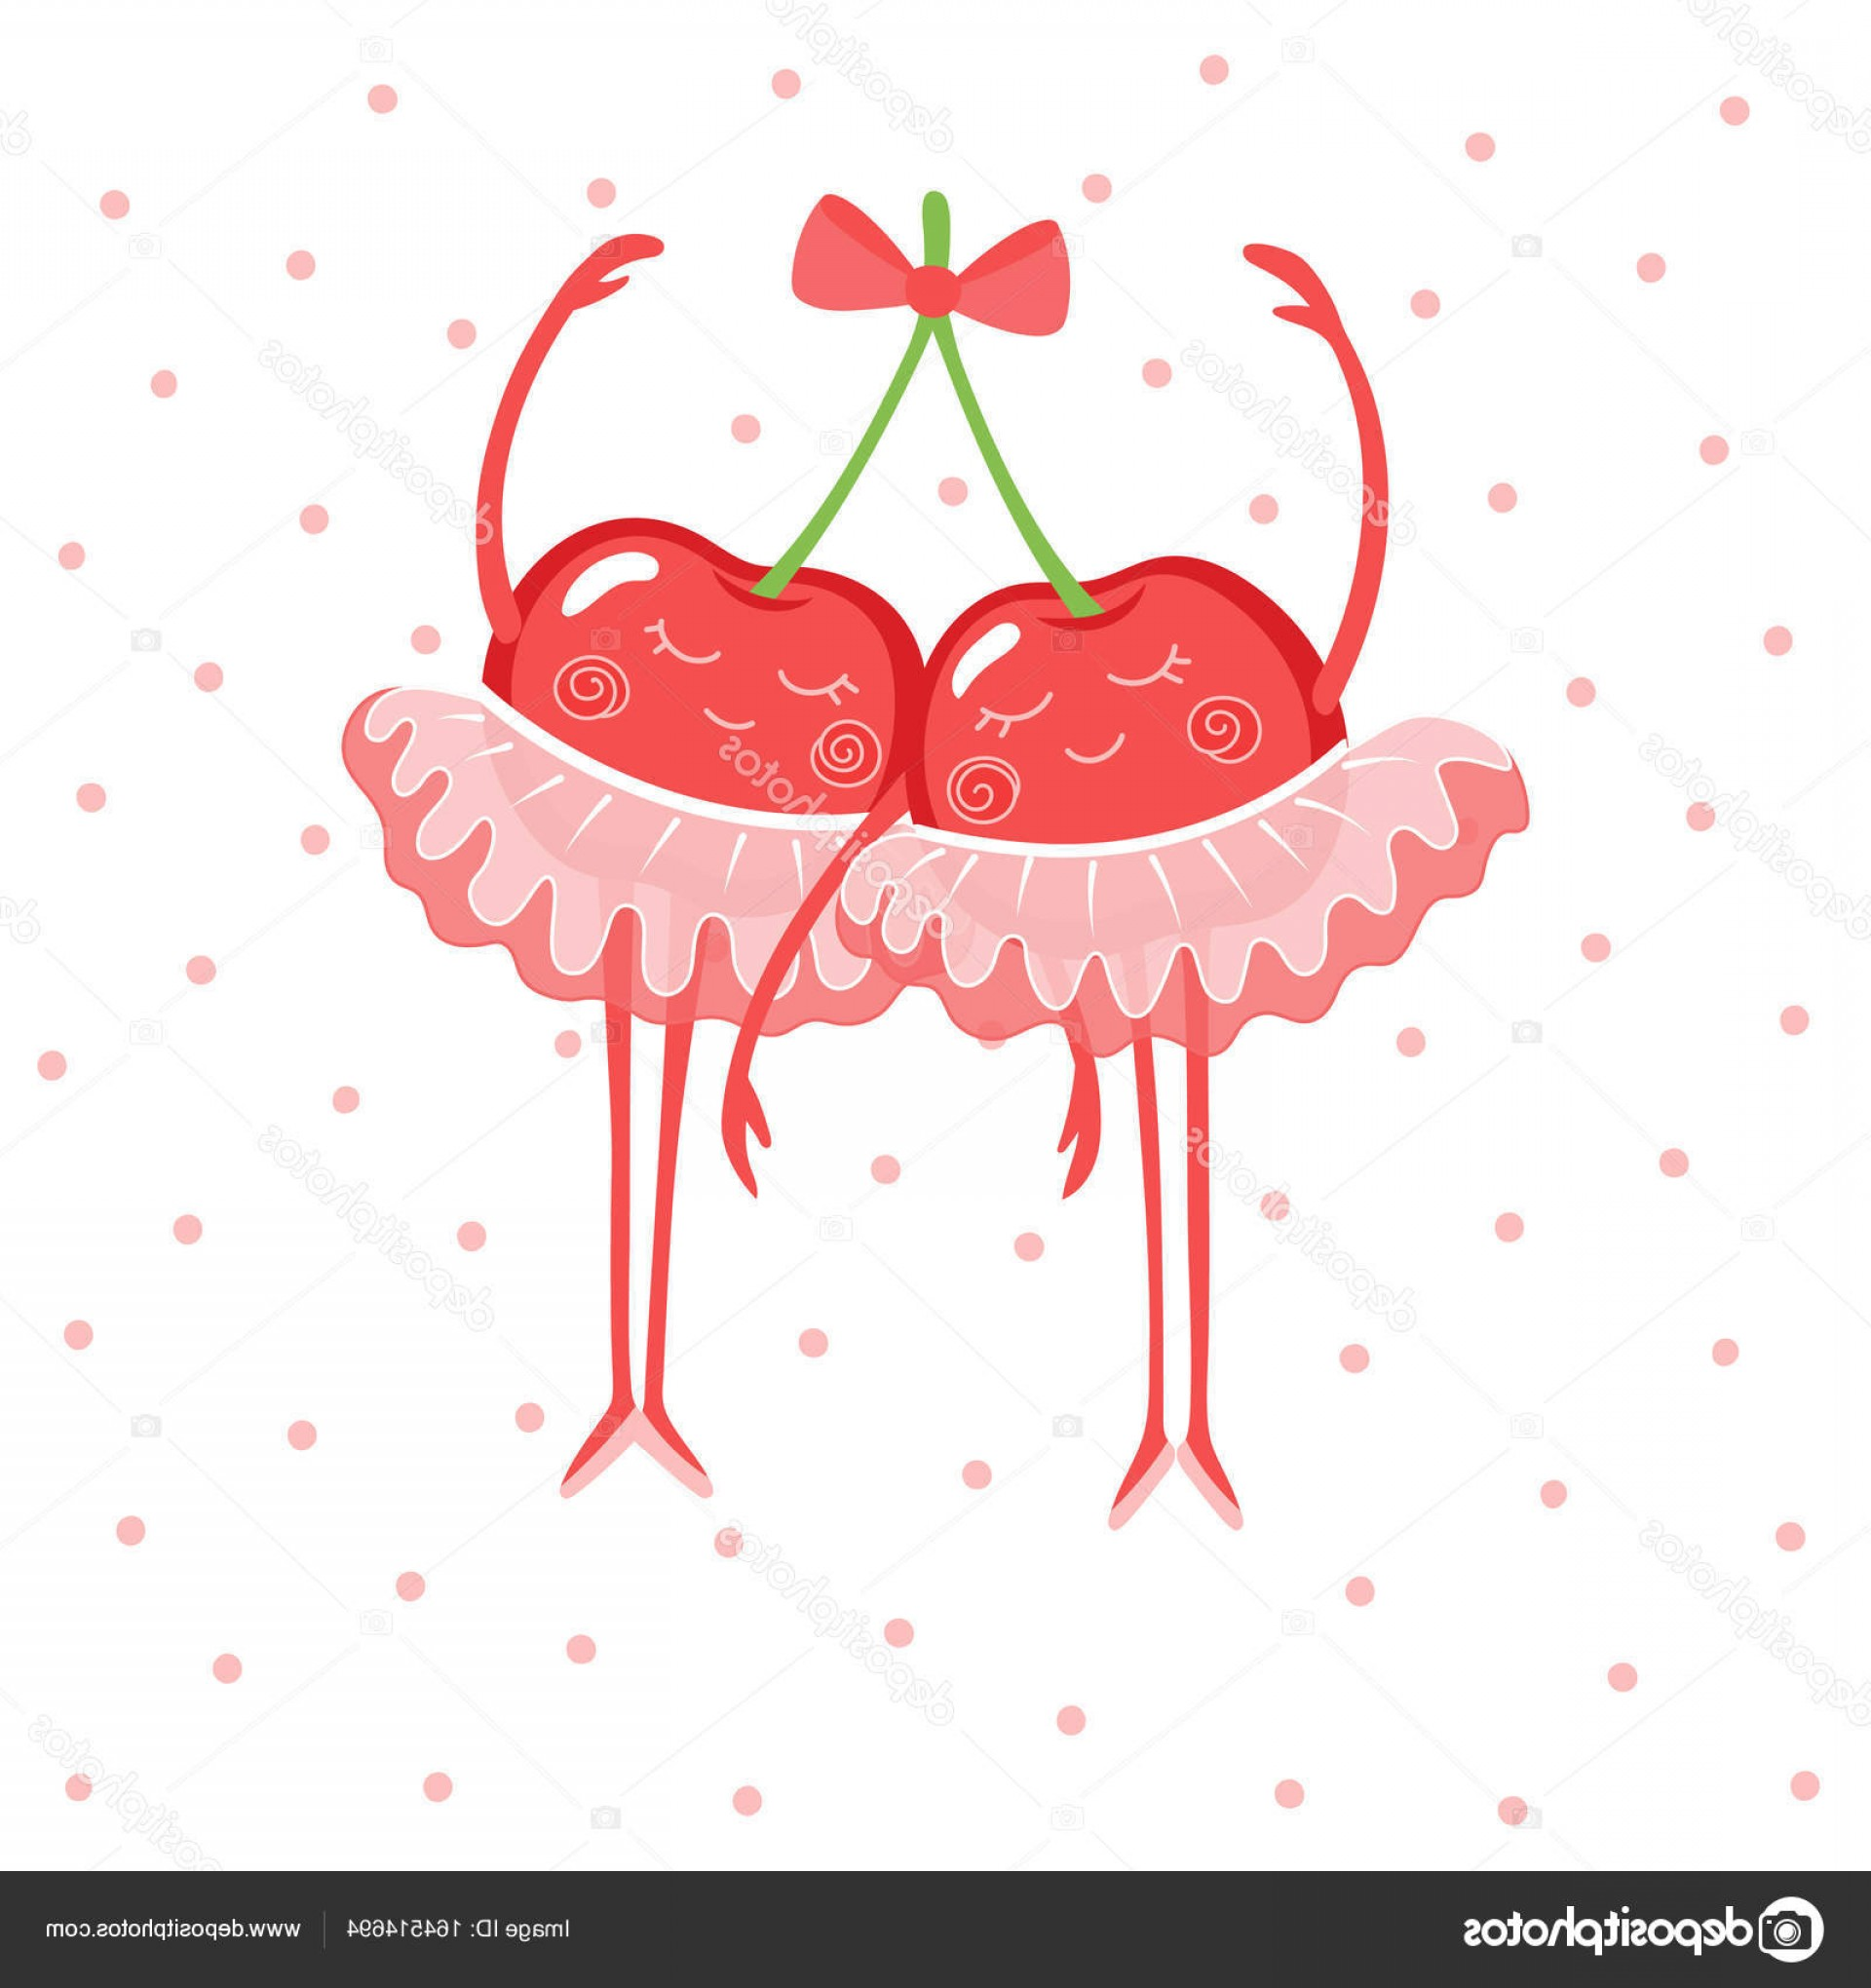 Ballet Vector Babydancer: Stock Illustration Two Cute Cherry Ballerinas In